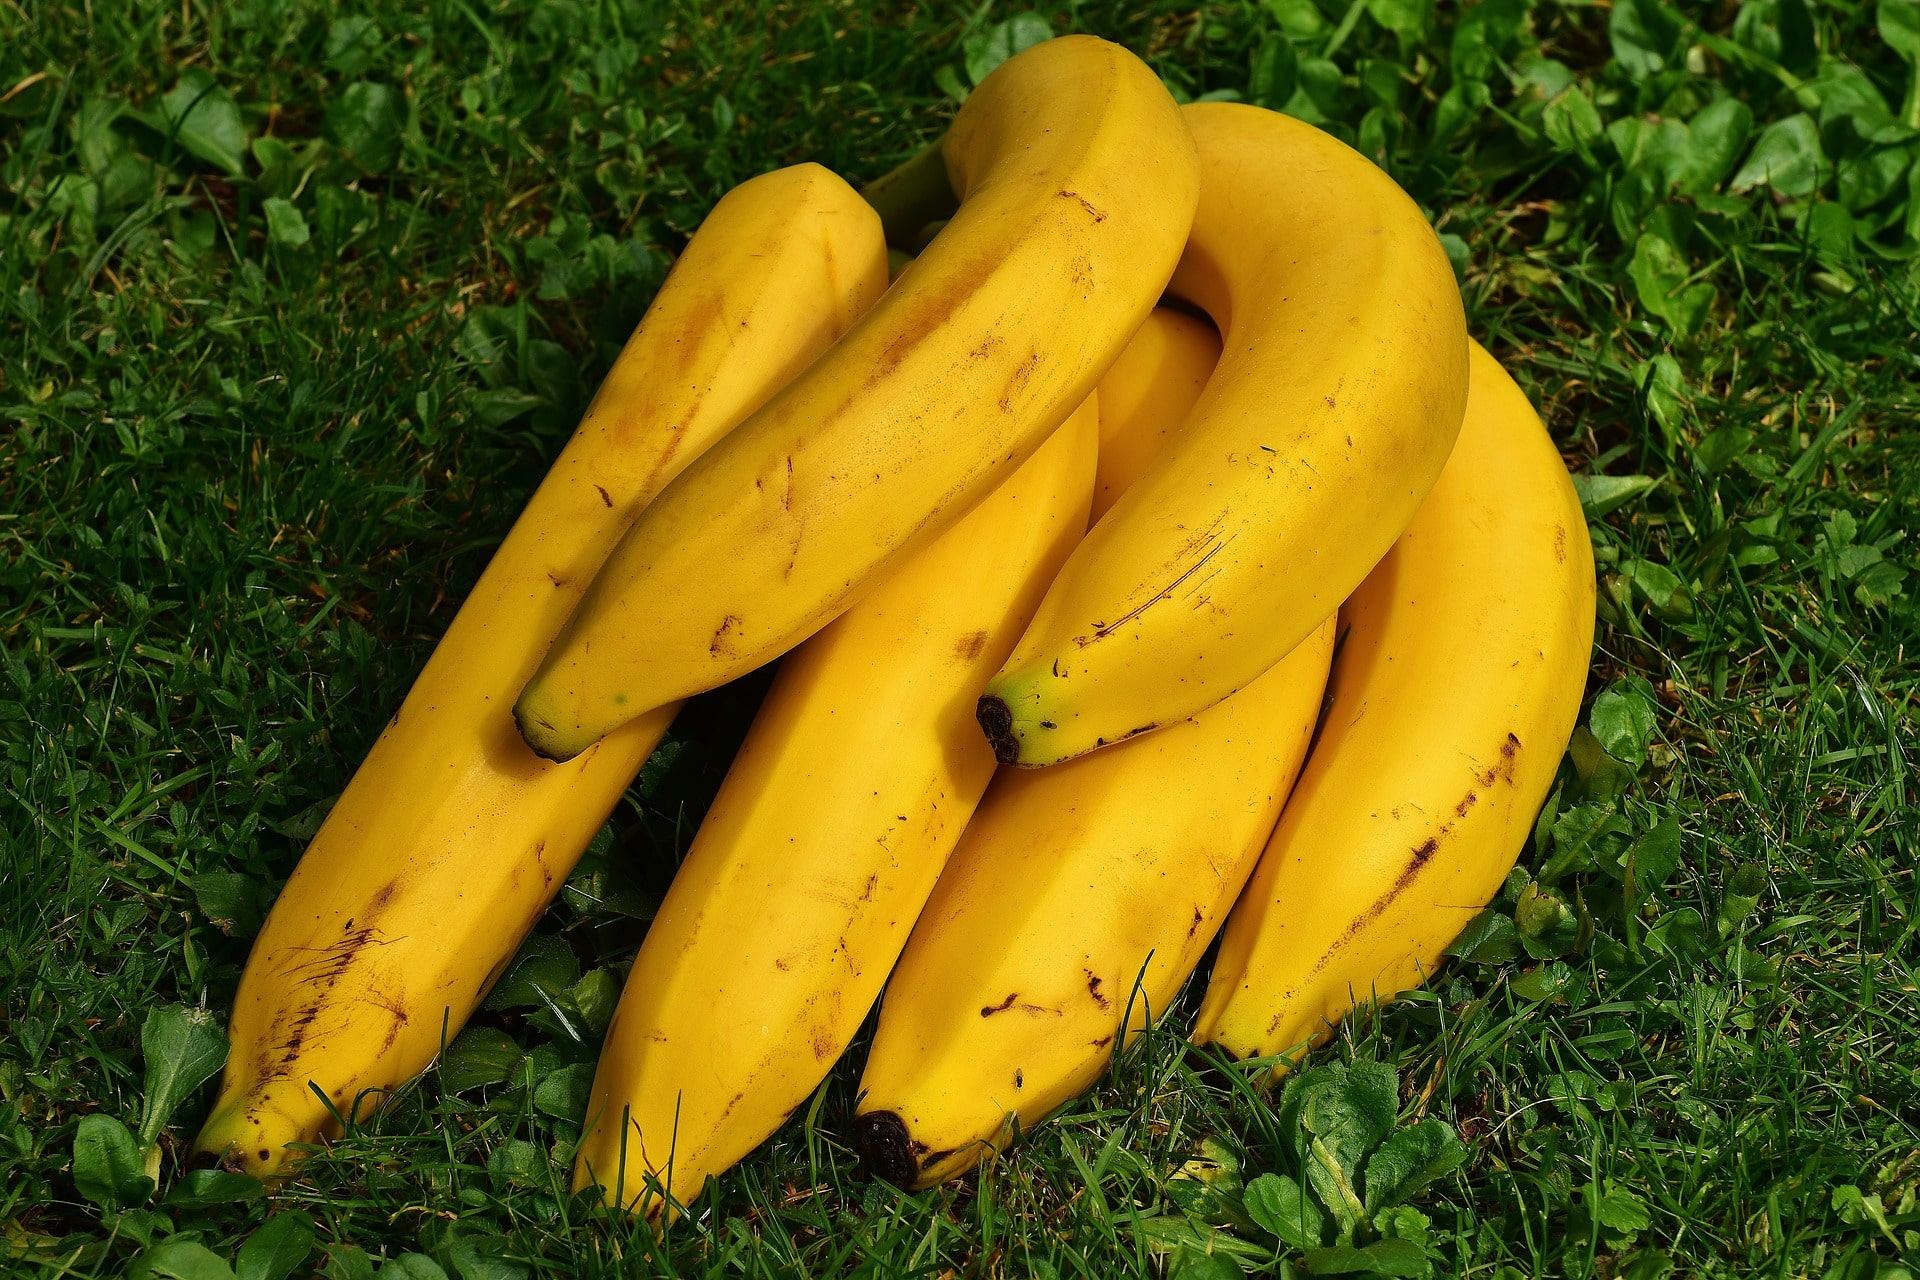 Banana health benefits and side effects